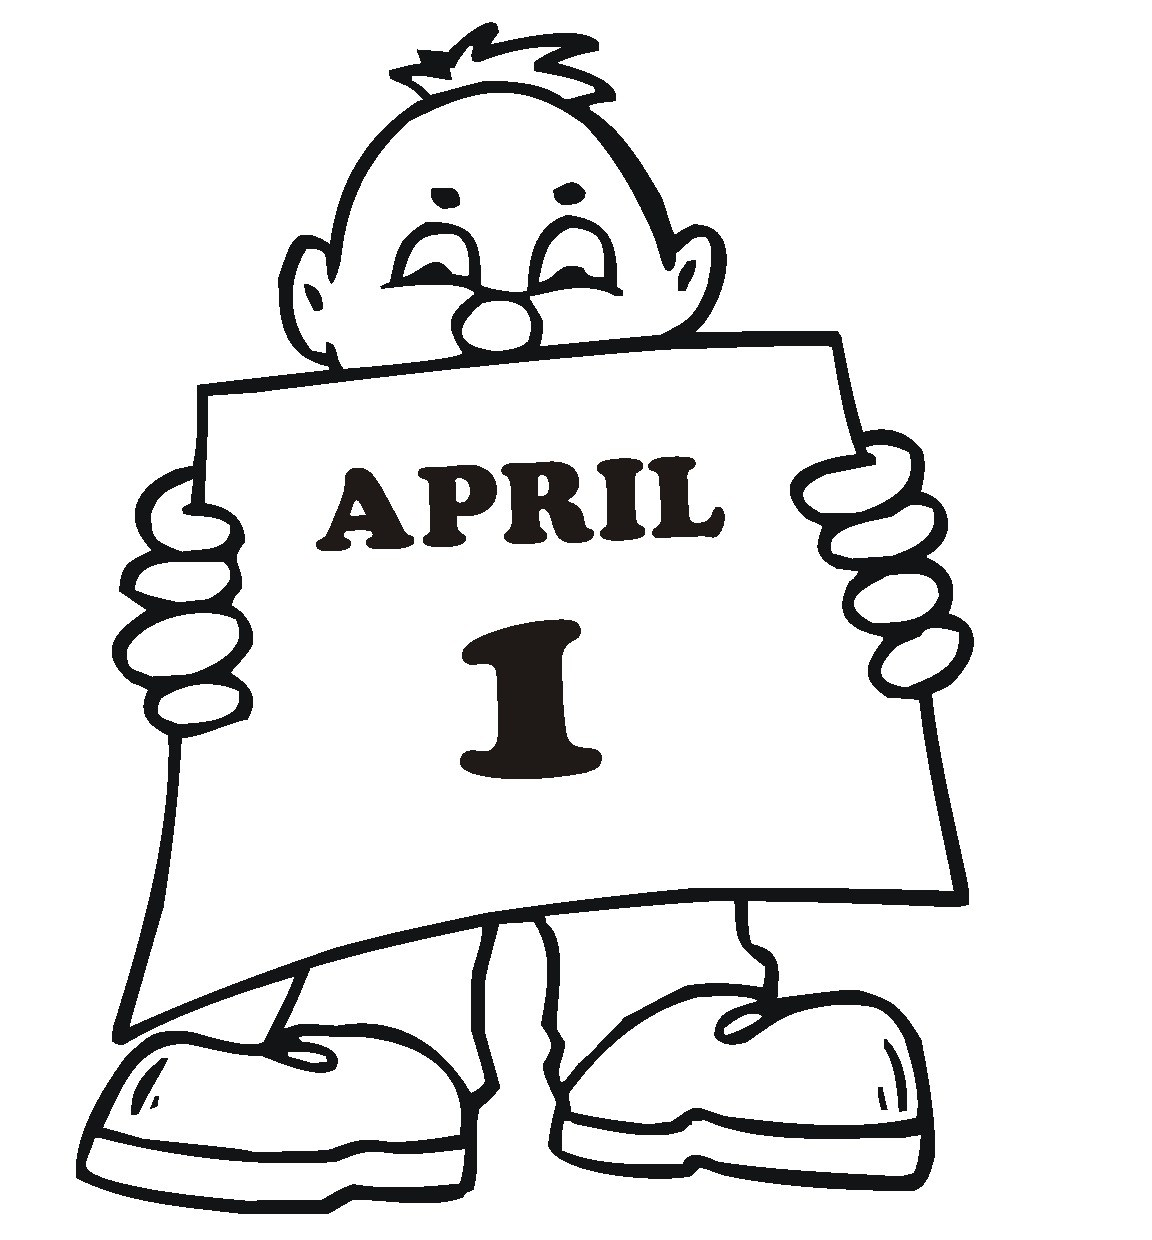 1152x1240 April Fools Day 2017 Clipart, Sketch Amp Drawing Activities Ideas